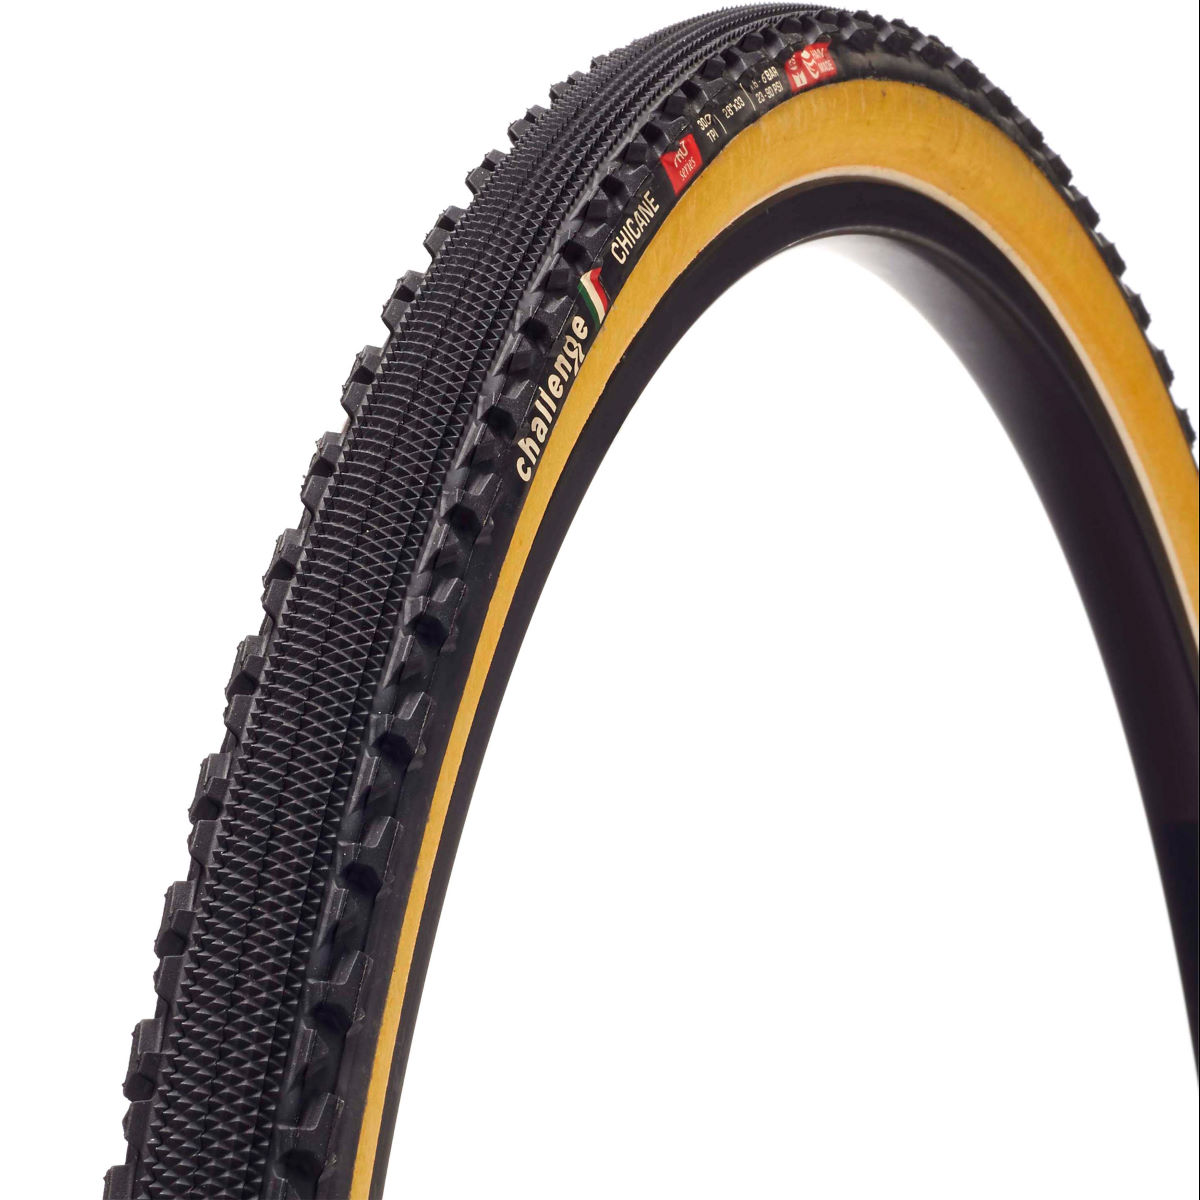 Challenge Chicane Pro Tubular Cyclocross Tyre - Cubiertas